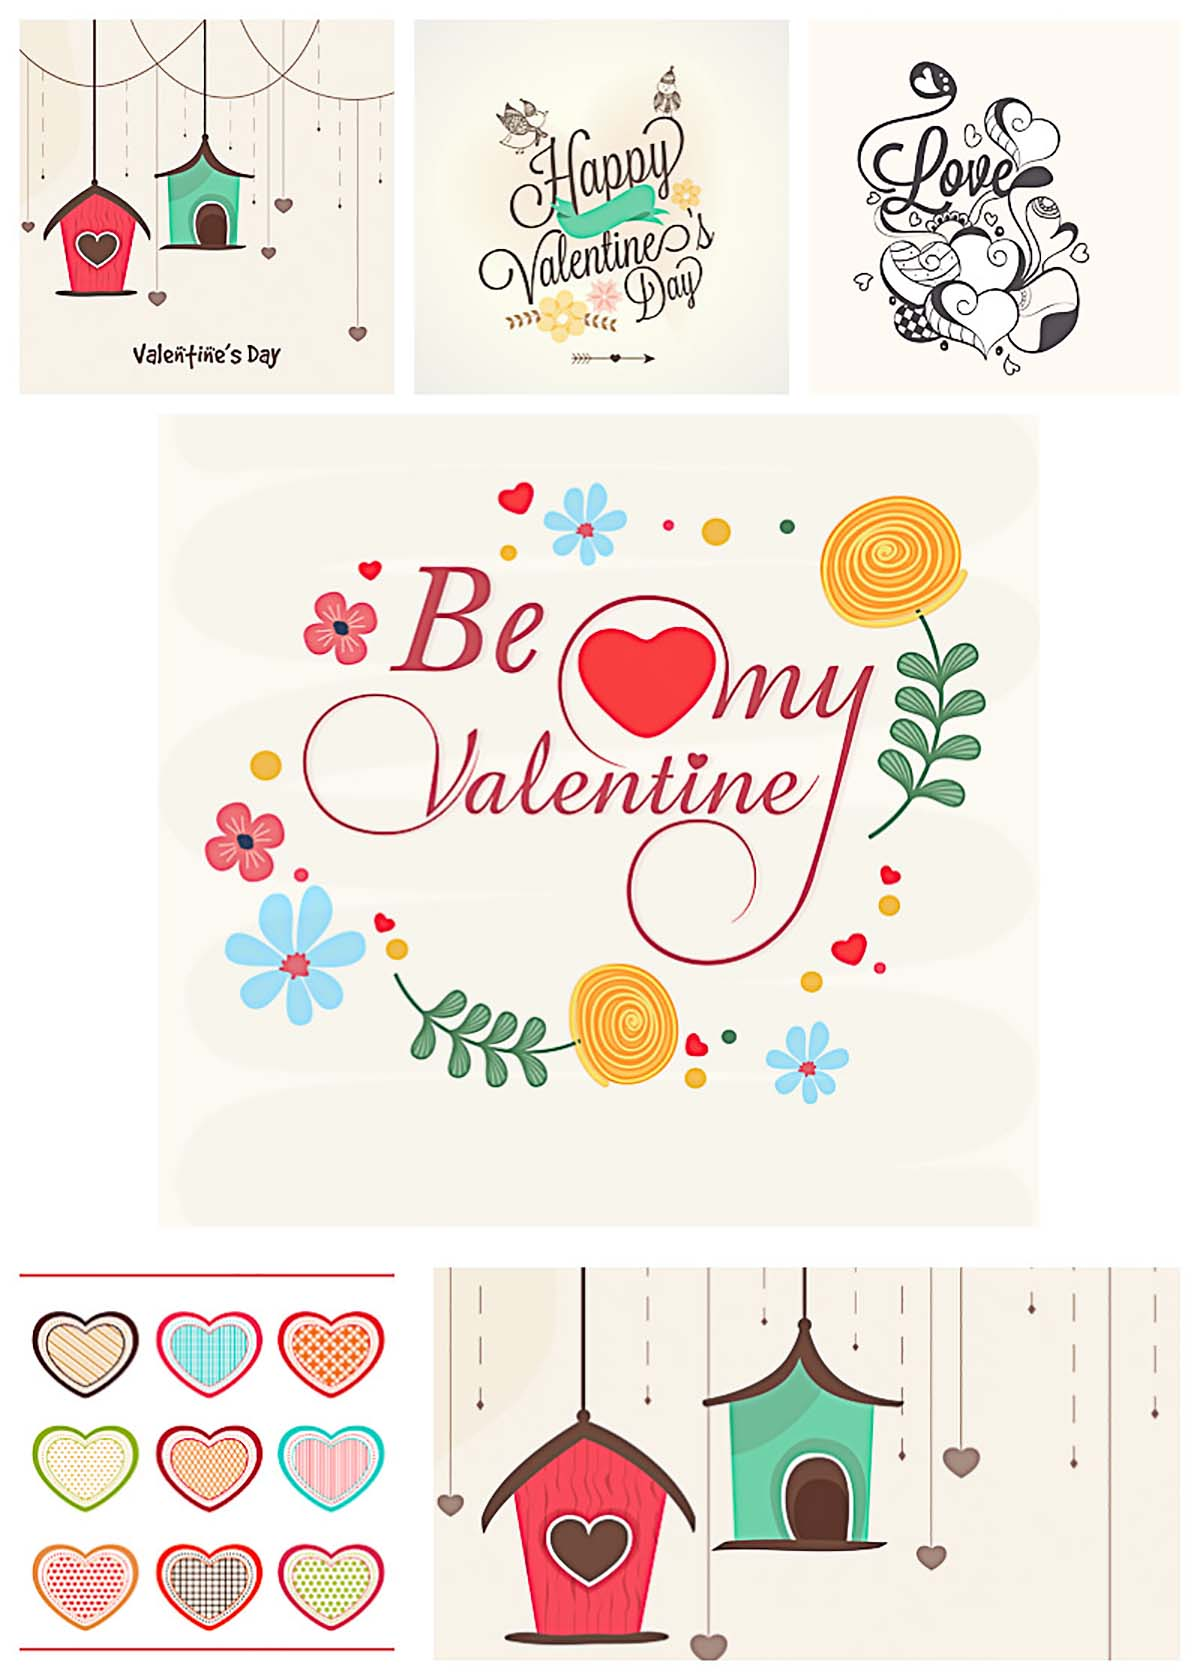 Creative St. Valentine's day cards and elements vectors